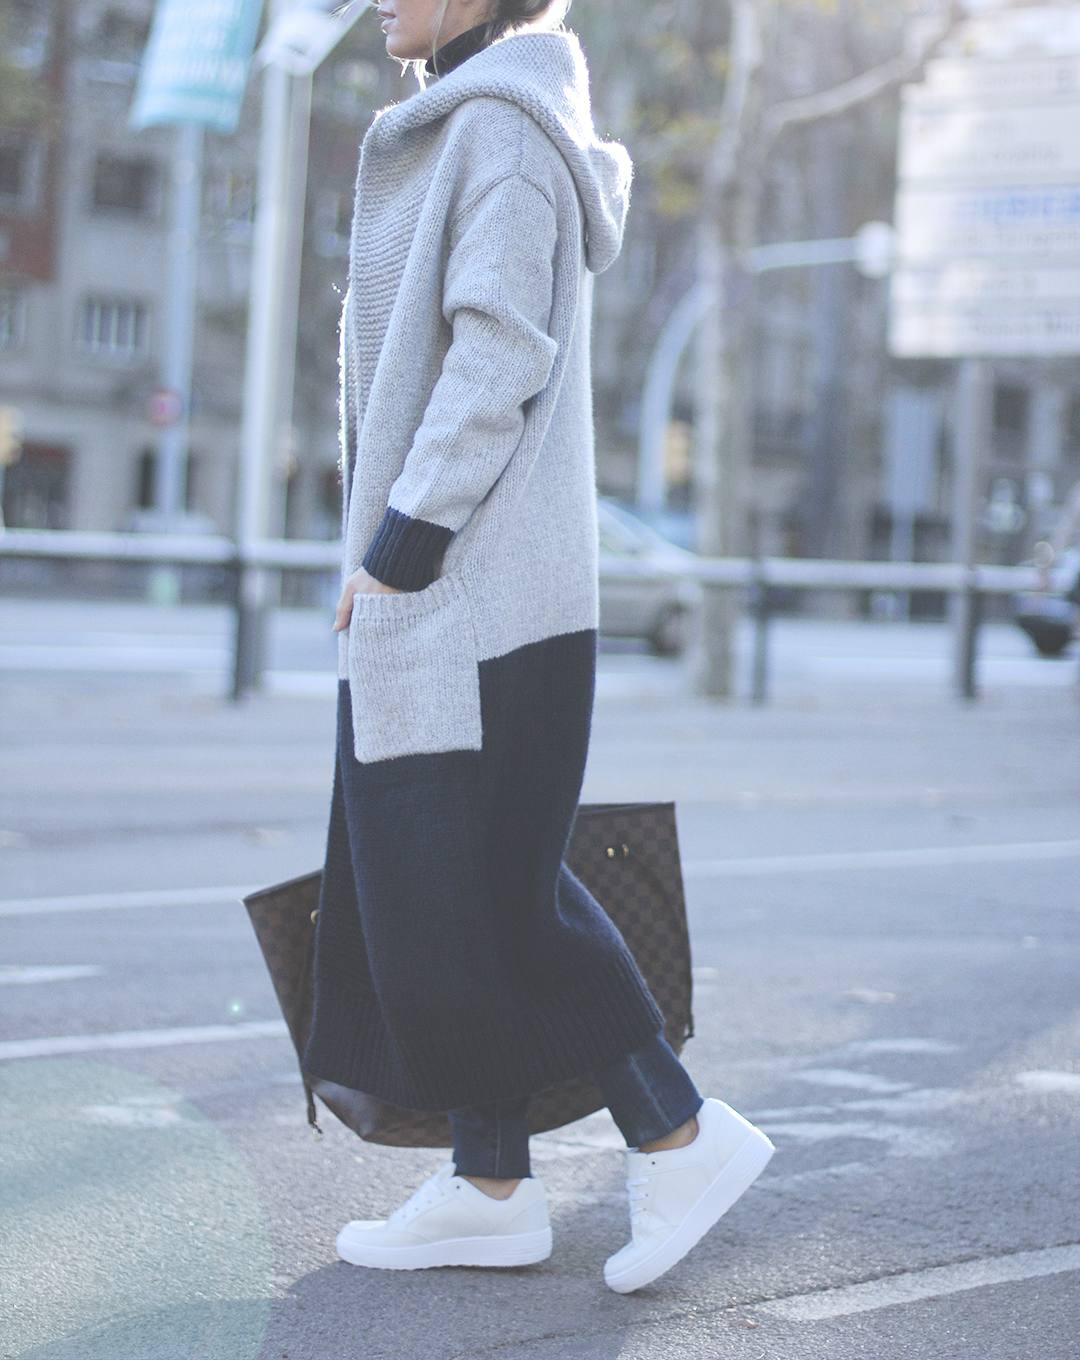 The long cardigan trend is perfect for the upcoming winter season. Mónica Sors wears this stylish block coloured cardi with jeans and funky white sneakers. Outfit: Oxygene, Shoes: Just Fab.